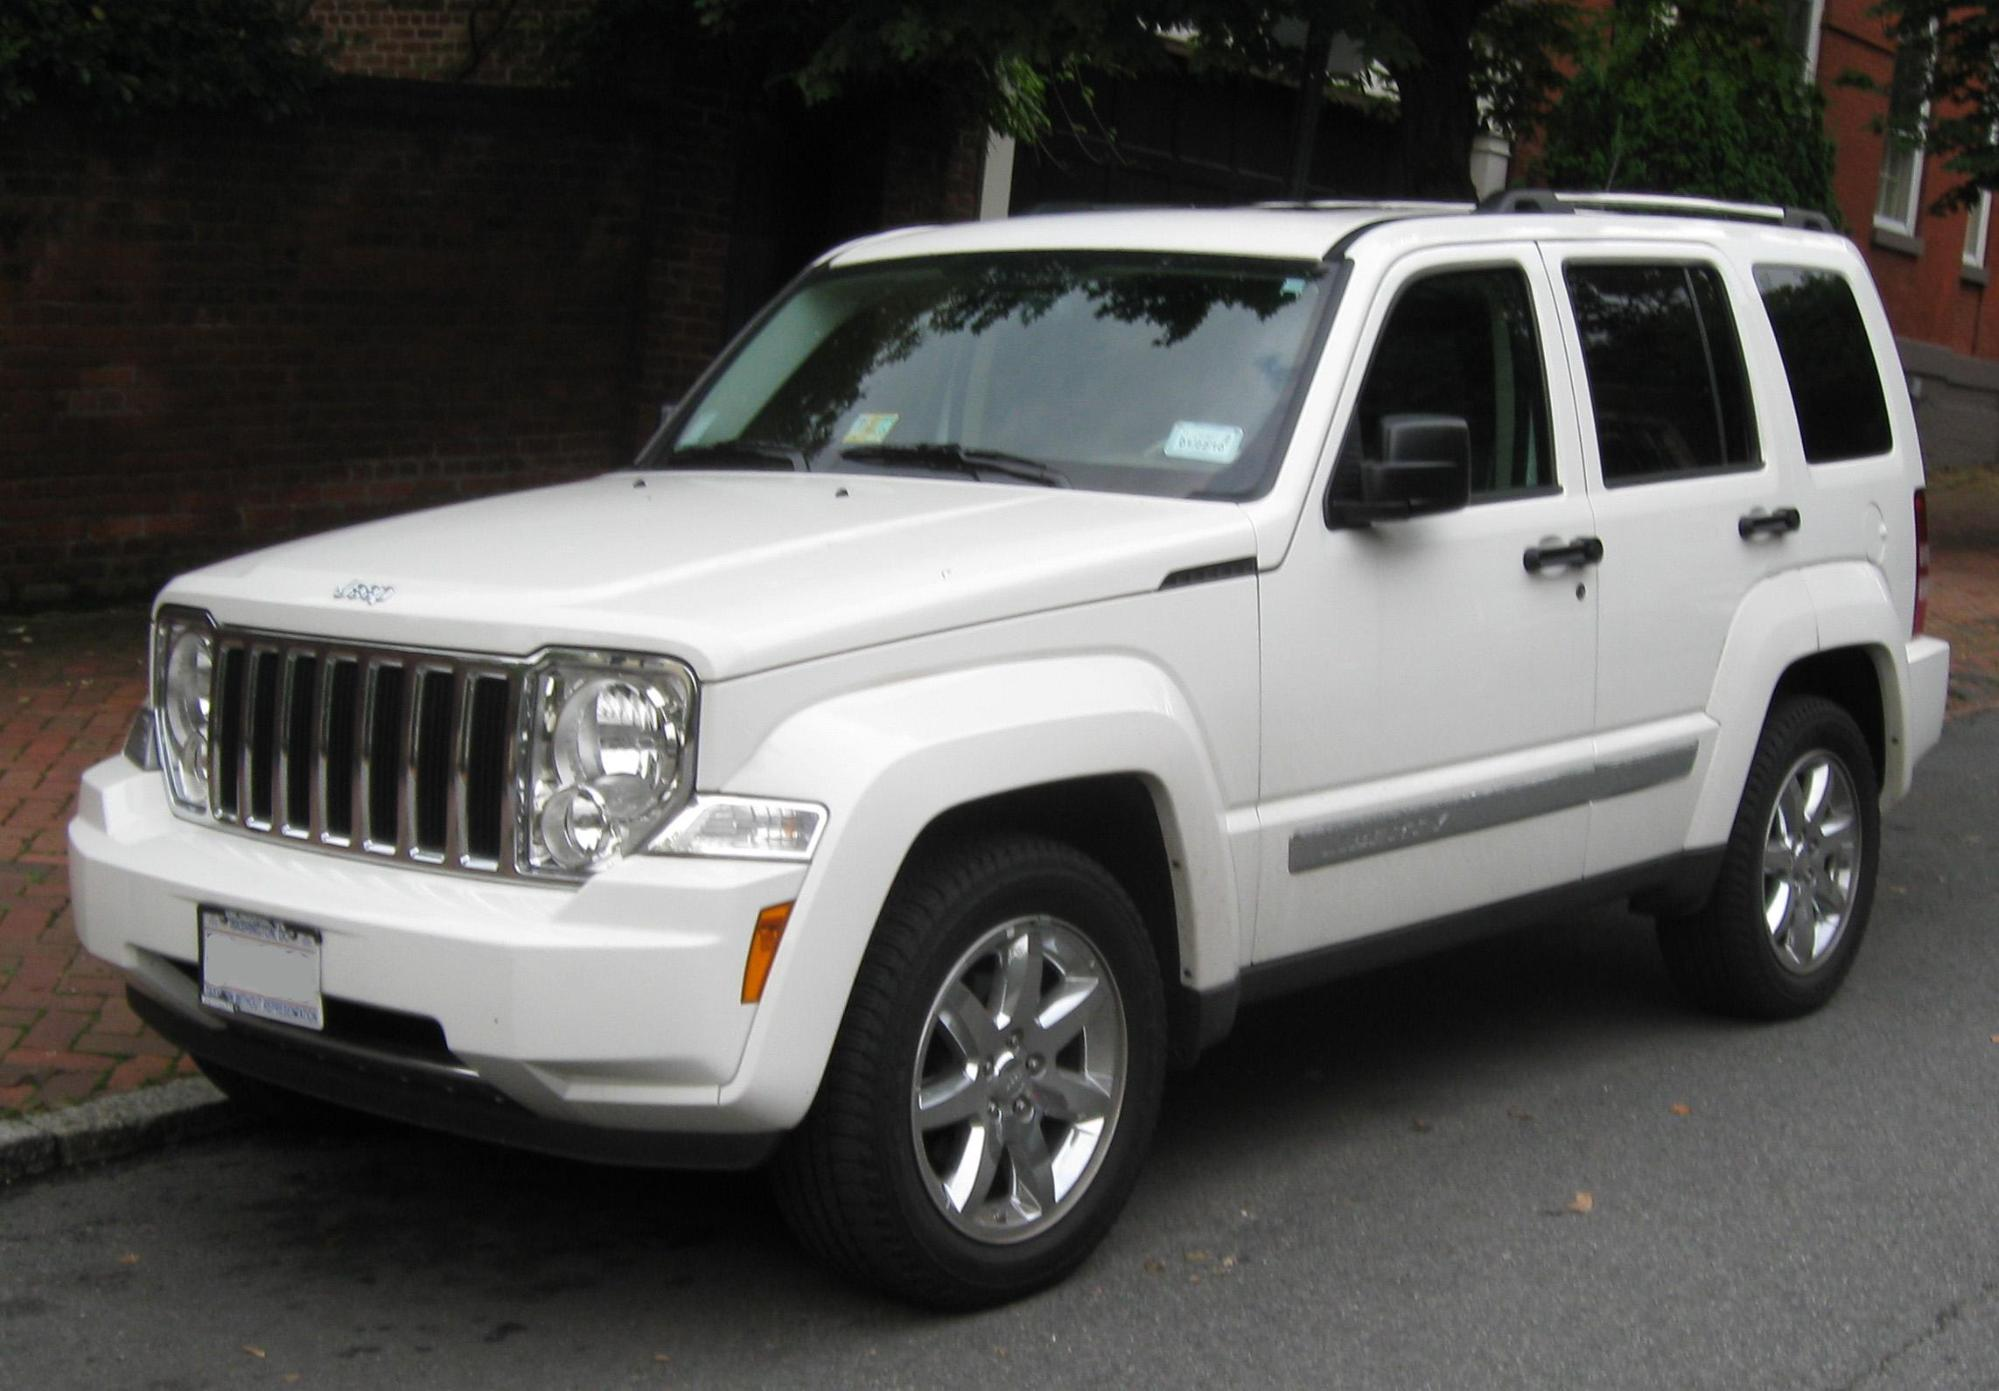 Second generation Jeep Liberty